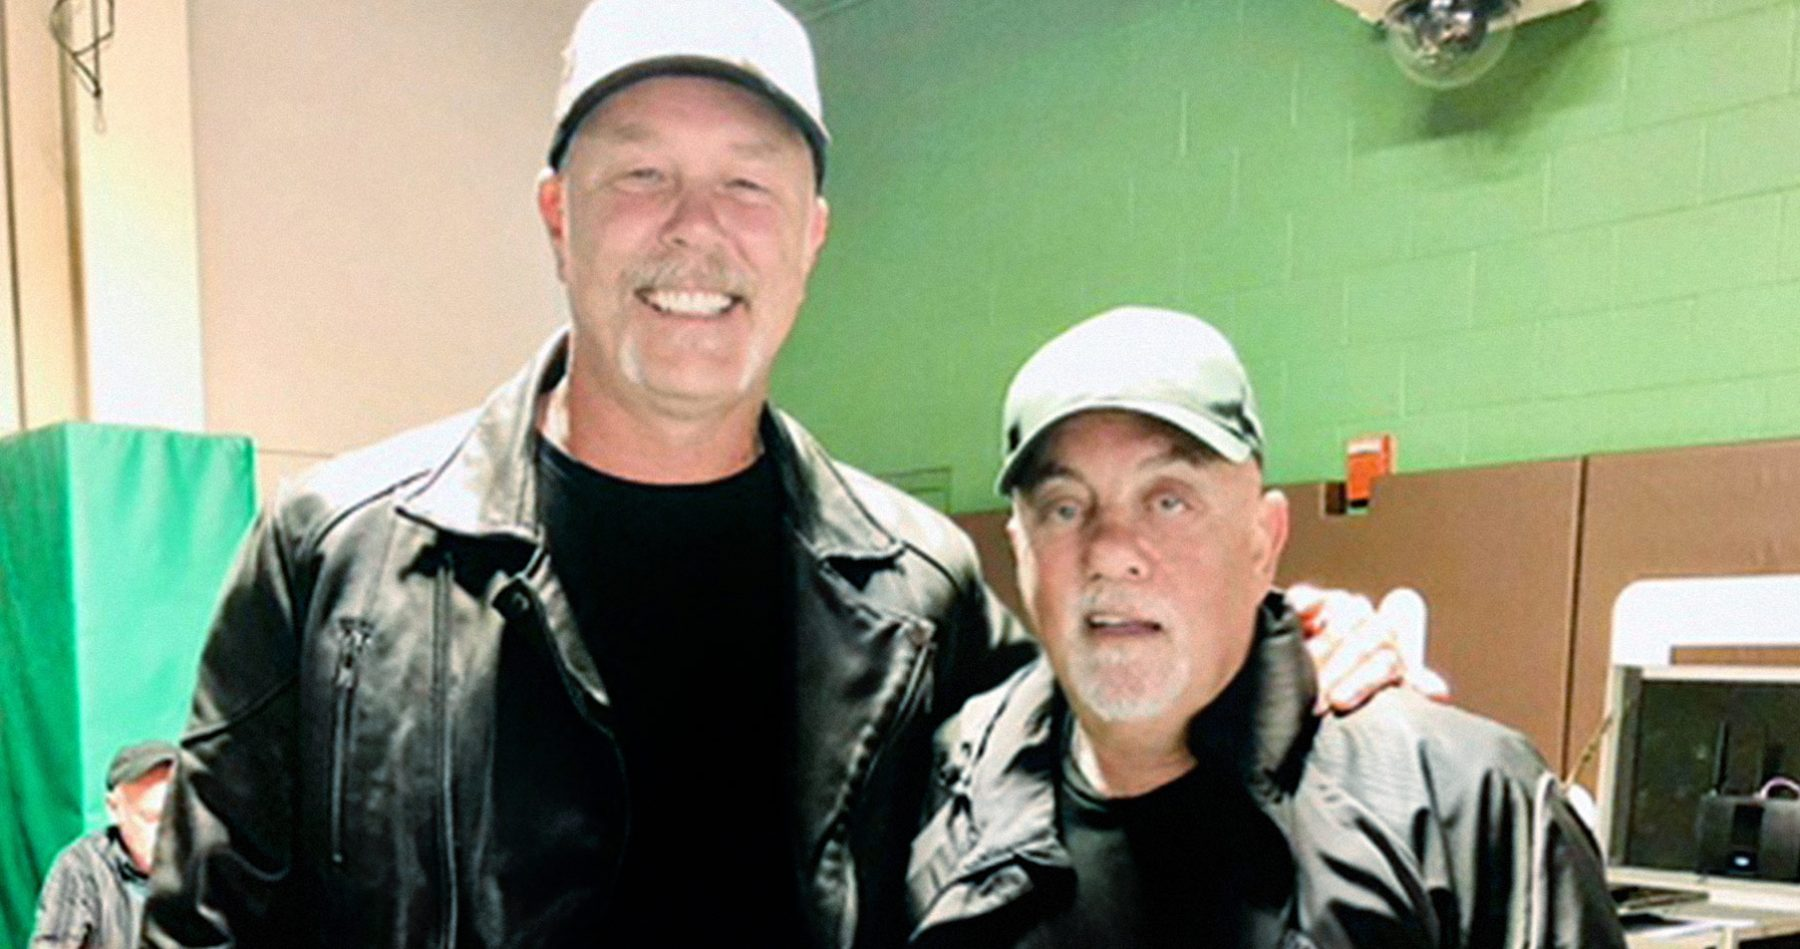 Billy Joel backstage with Metallica's James Hatfield at Wrigley Field Chicago, IL September 7, 2018